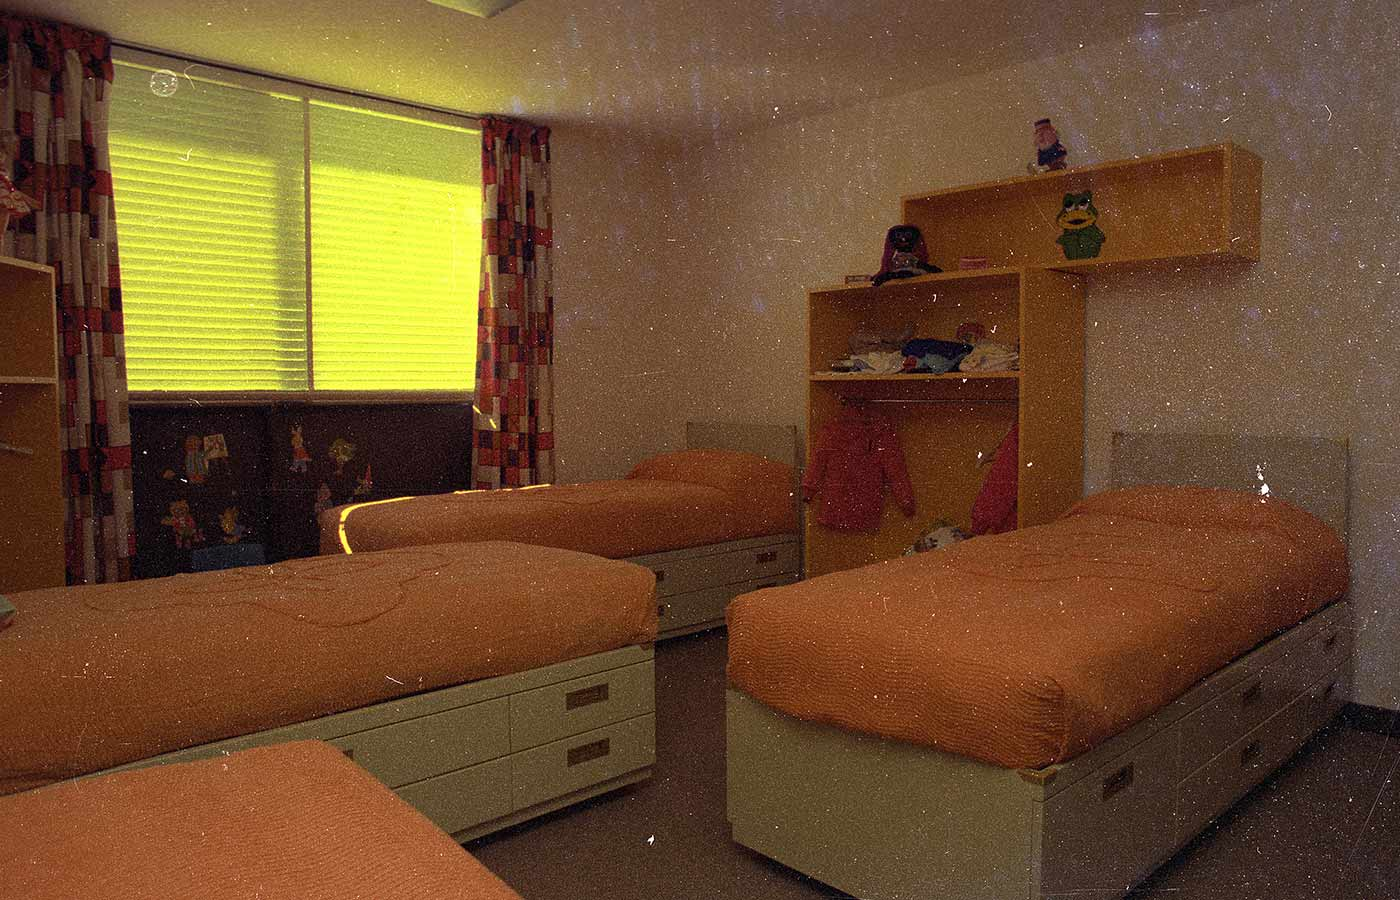 Colour image showing four beds in a room, with orange bedspreads, and drawers under each. Bright yellow shelves on the far wall contain clothes and a toy frog and doll. - click to view larger image